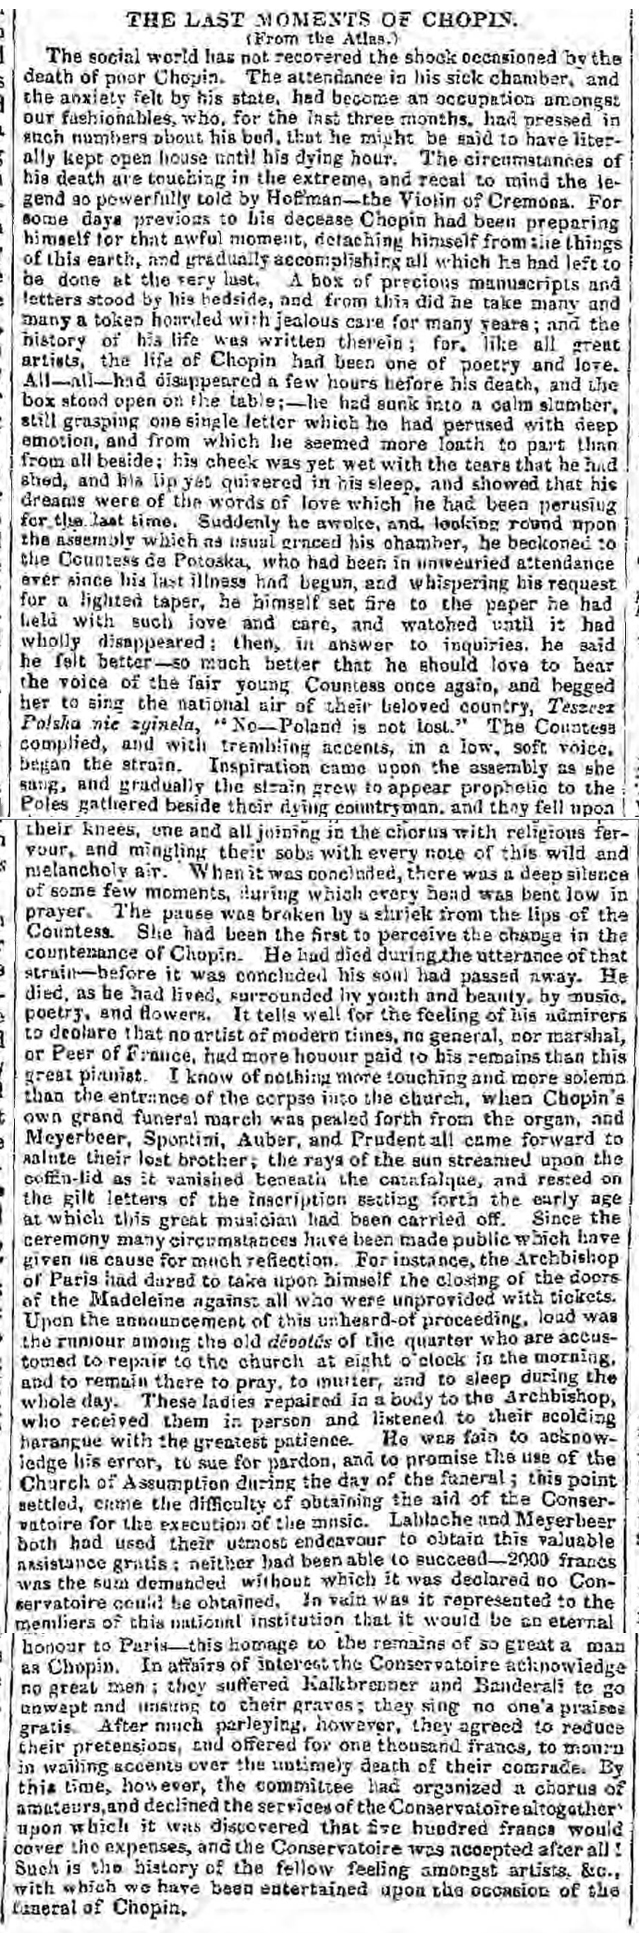 historical newspaper report on The Death of Chopin